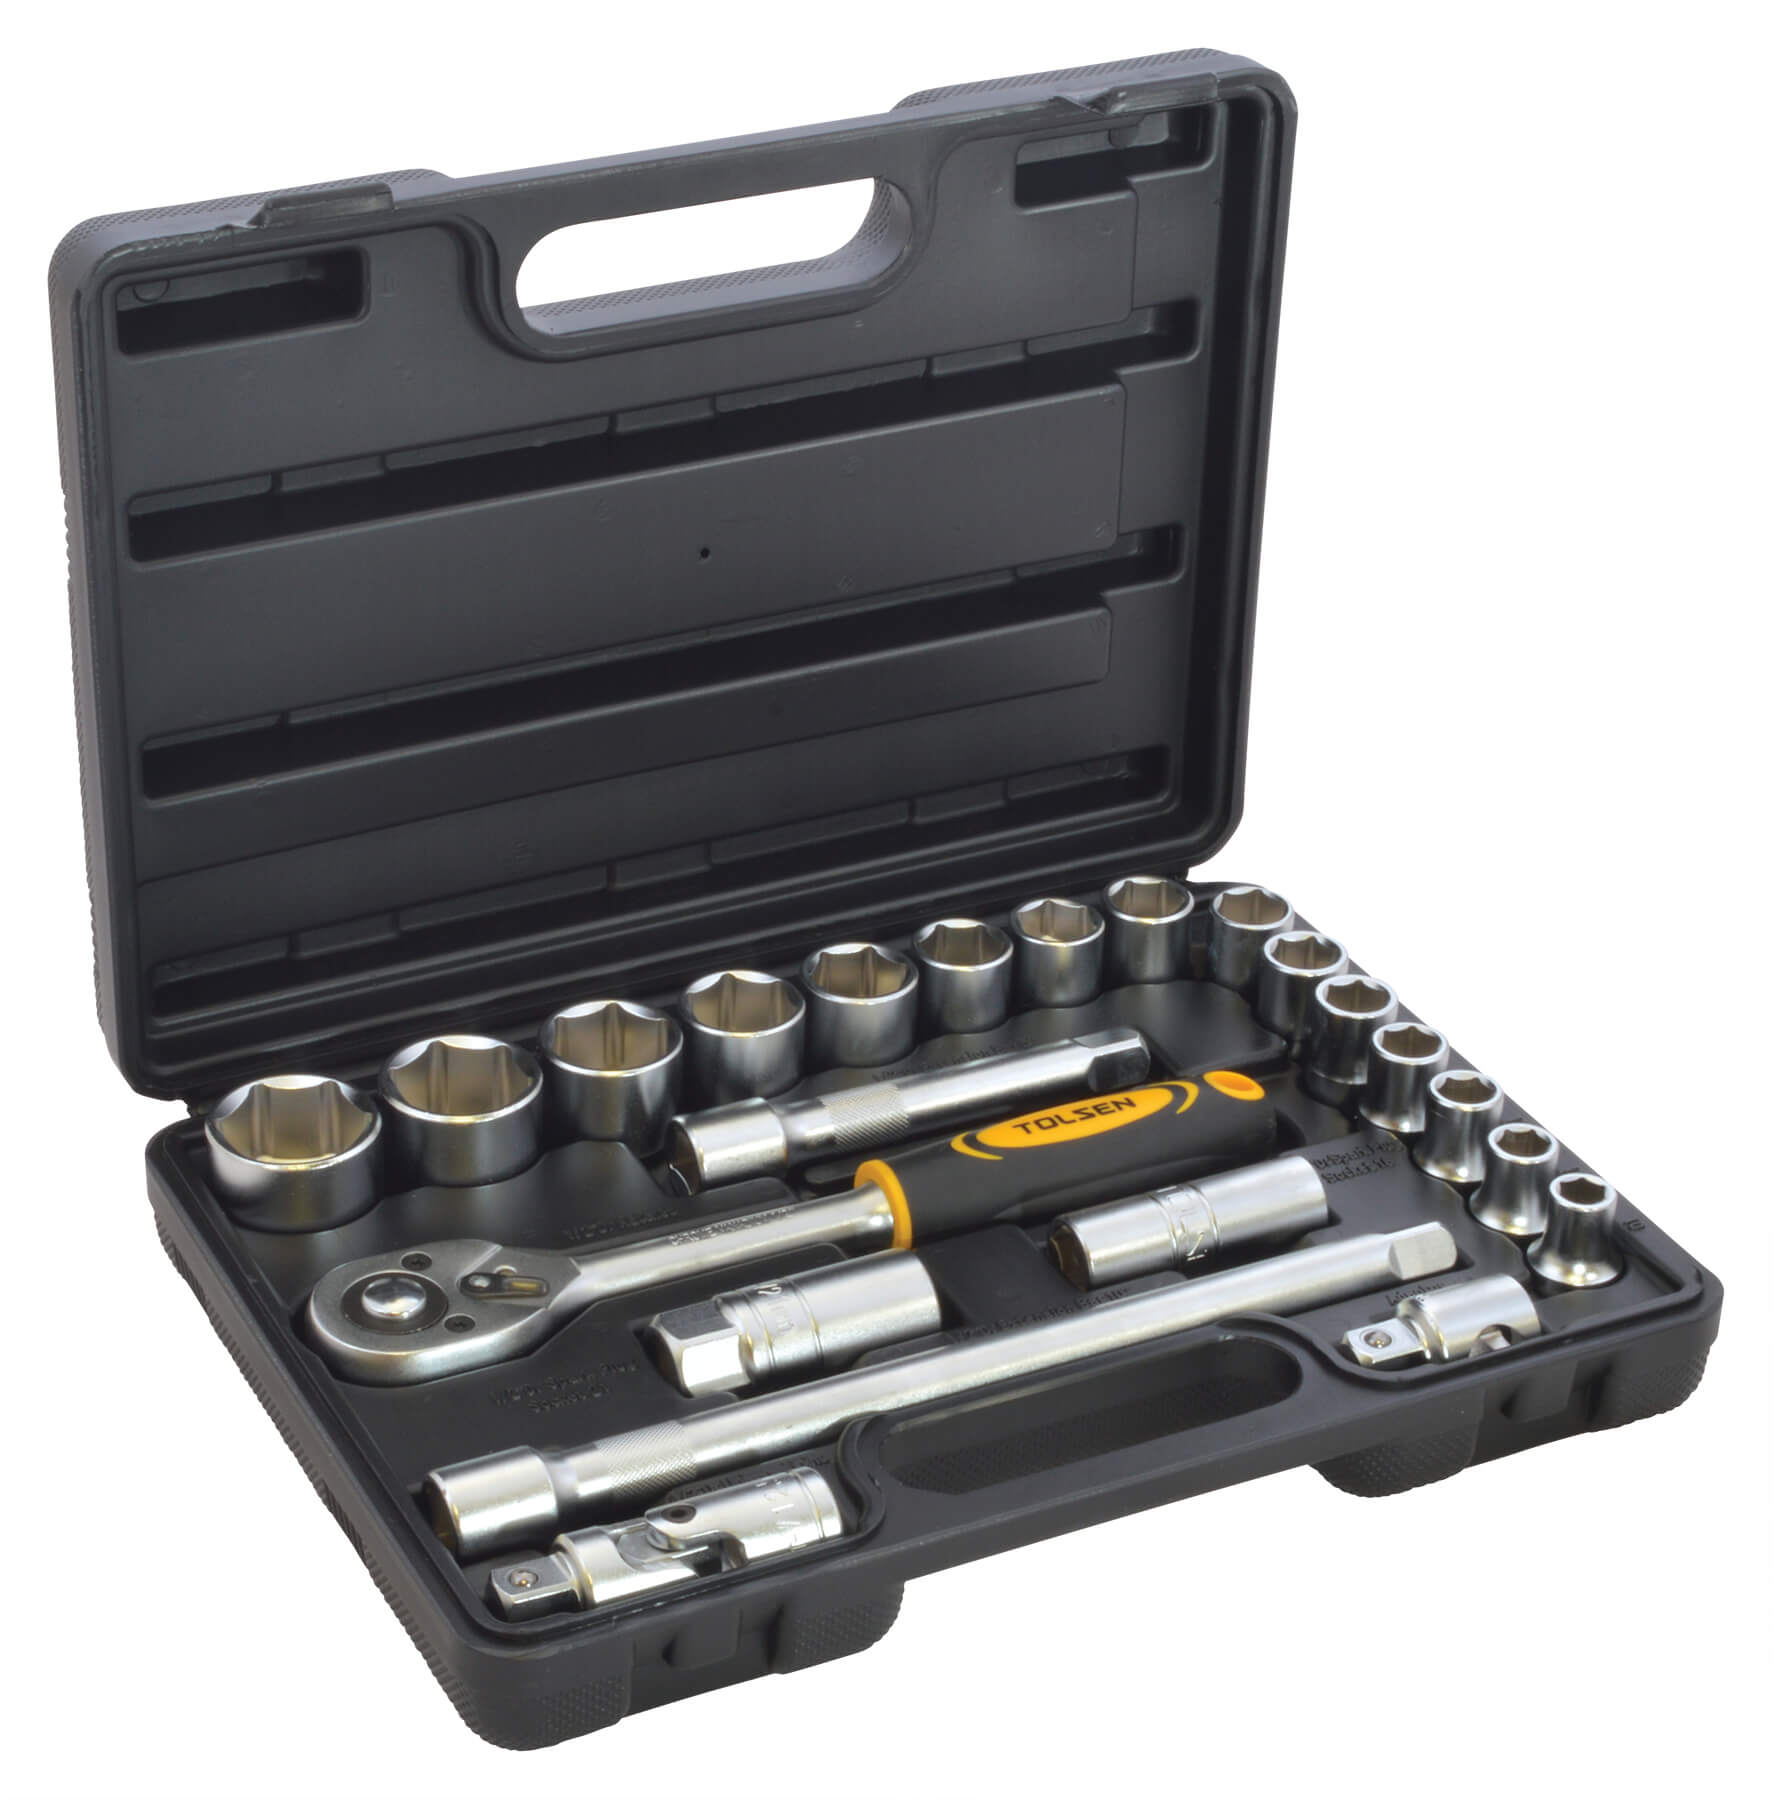 Industrial Socket Set - 1/2